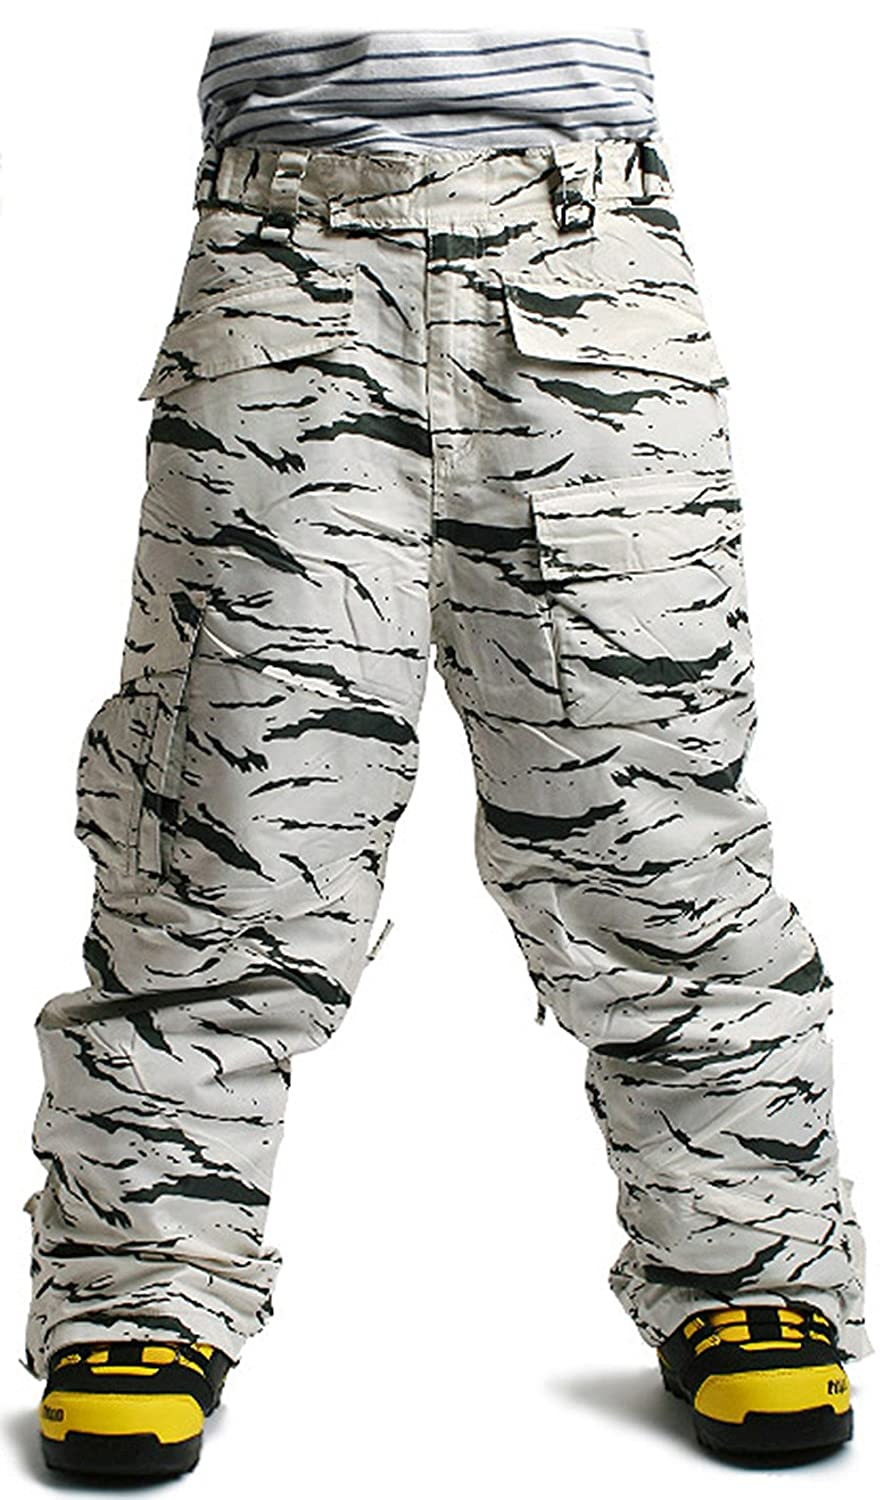 South Play Mens Premium Waterproof Ski Snowboard Wear Pants Trousers Desert